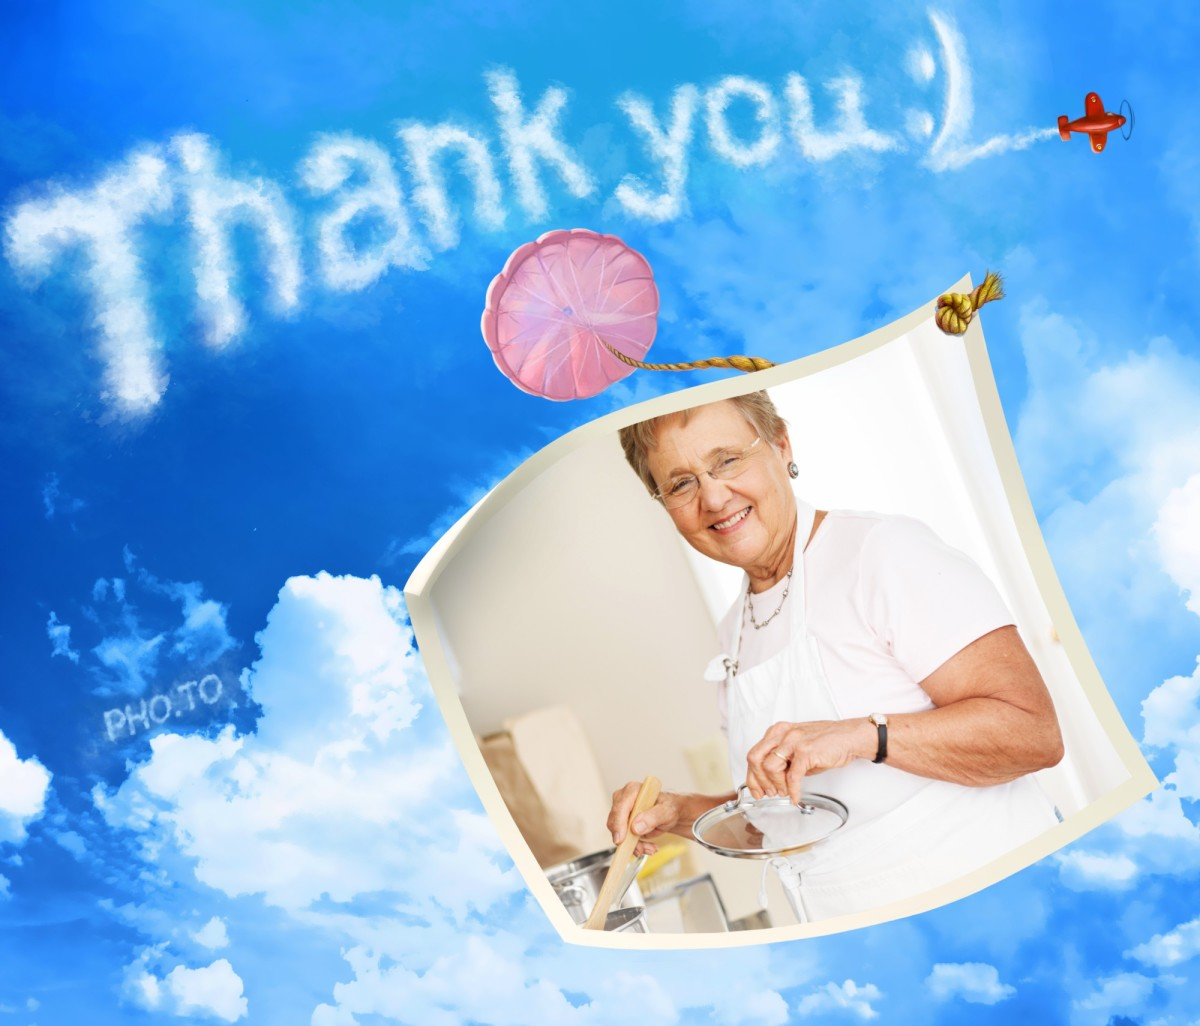 A Thanks you photo card was made to thank a granny cooking lots of tasty dishes for Thanksgiving holiday table